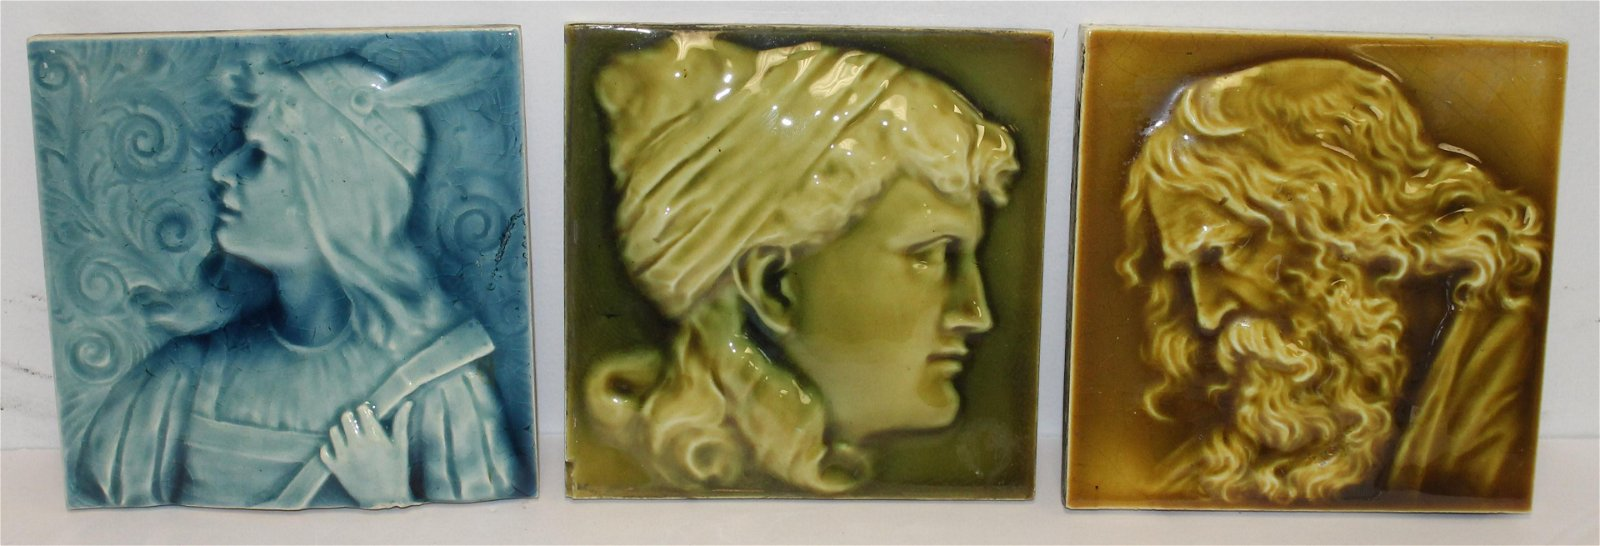 3 pottery tiles w figural decoration by The Art Tile